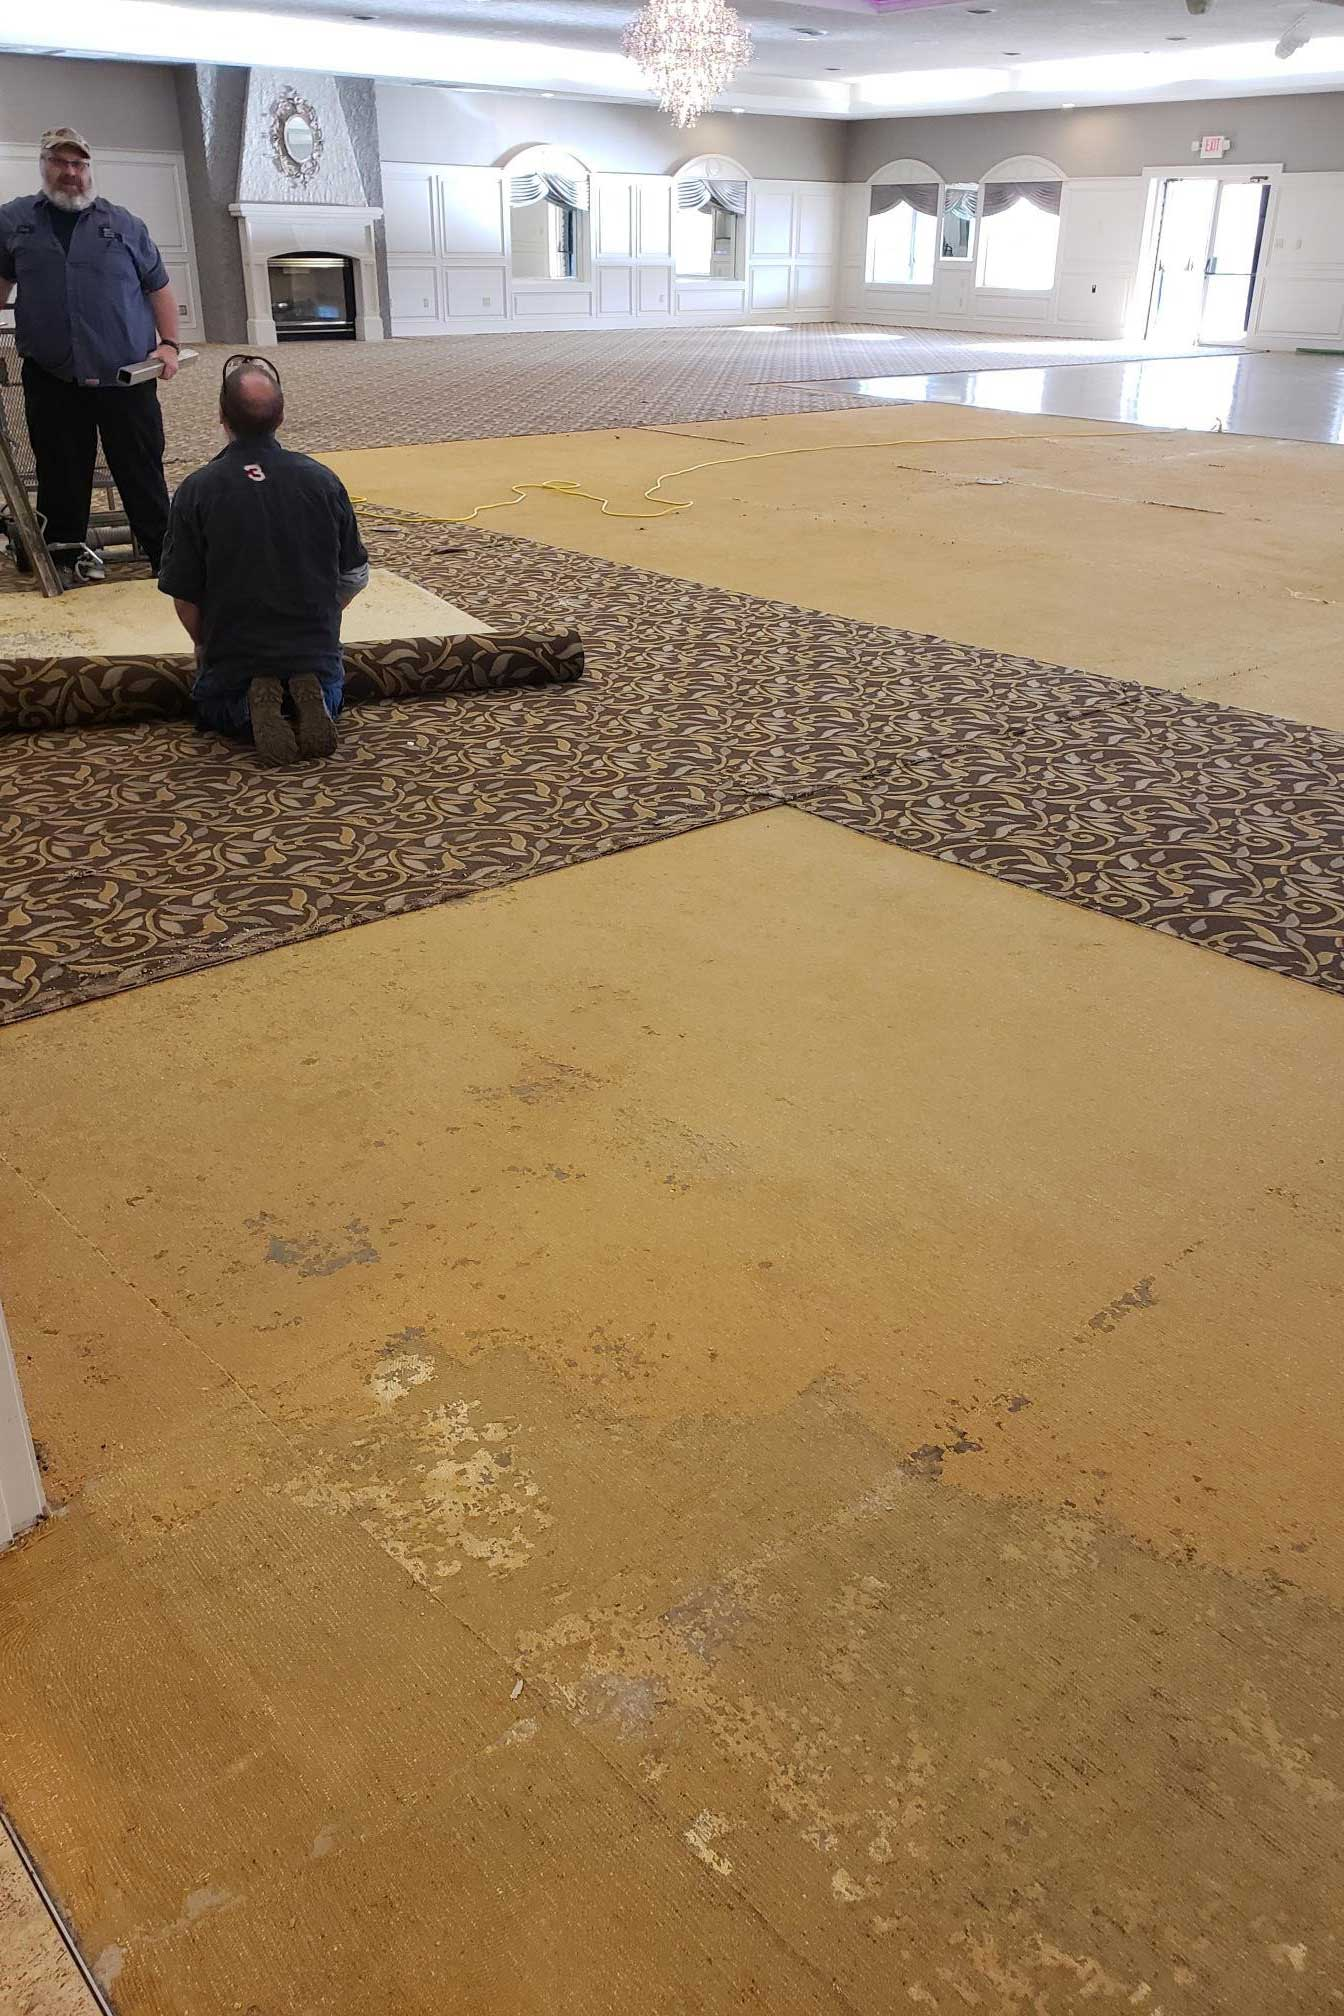 Ripping up the old patterned carpet in the The Ballroom at The Willows